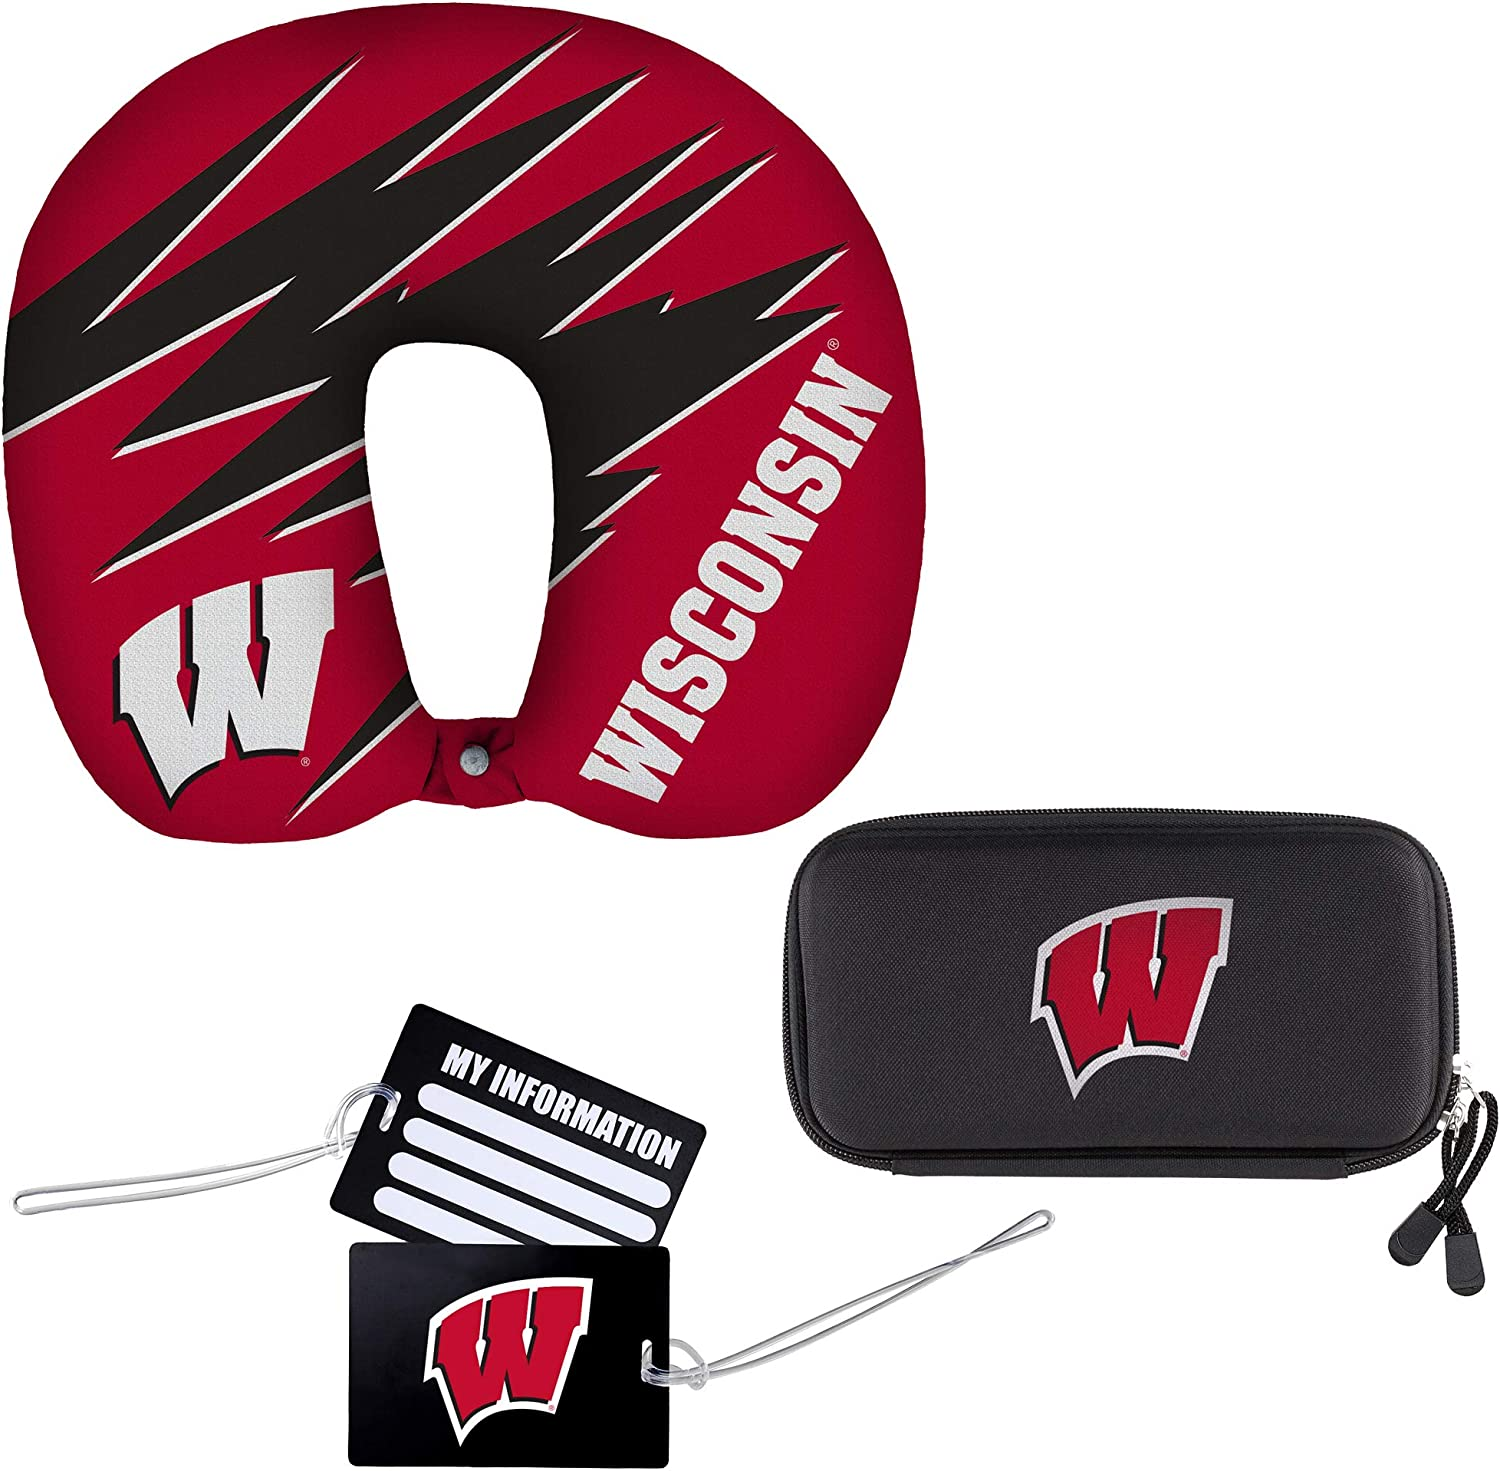 The Northwest Company Officially Licensed NCAA Wisconsin Badgers 4-Piece Travel Set Tags Red Utility Cord Case Set of 2 Luggage I.D Comfort Travel Pillow 13 x 3 x 12 inches